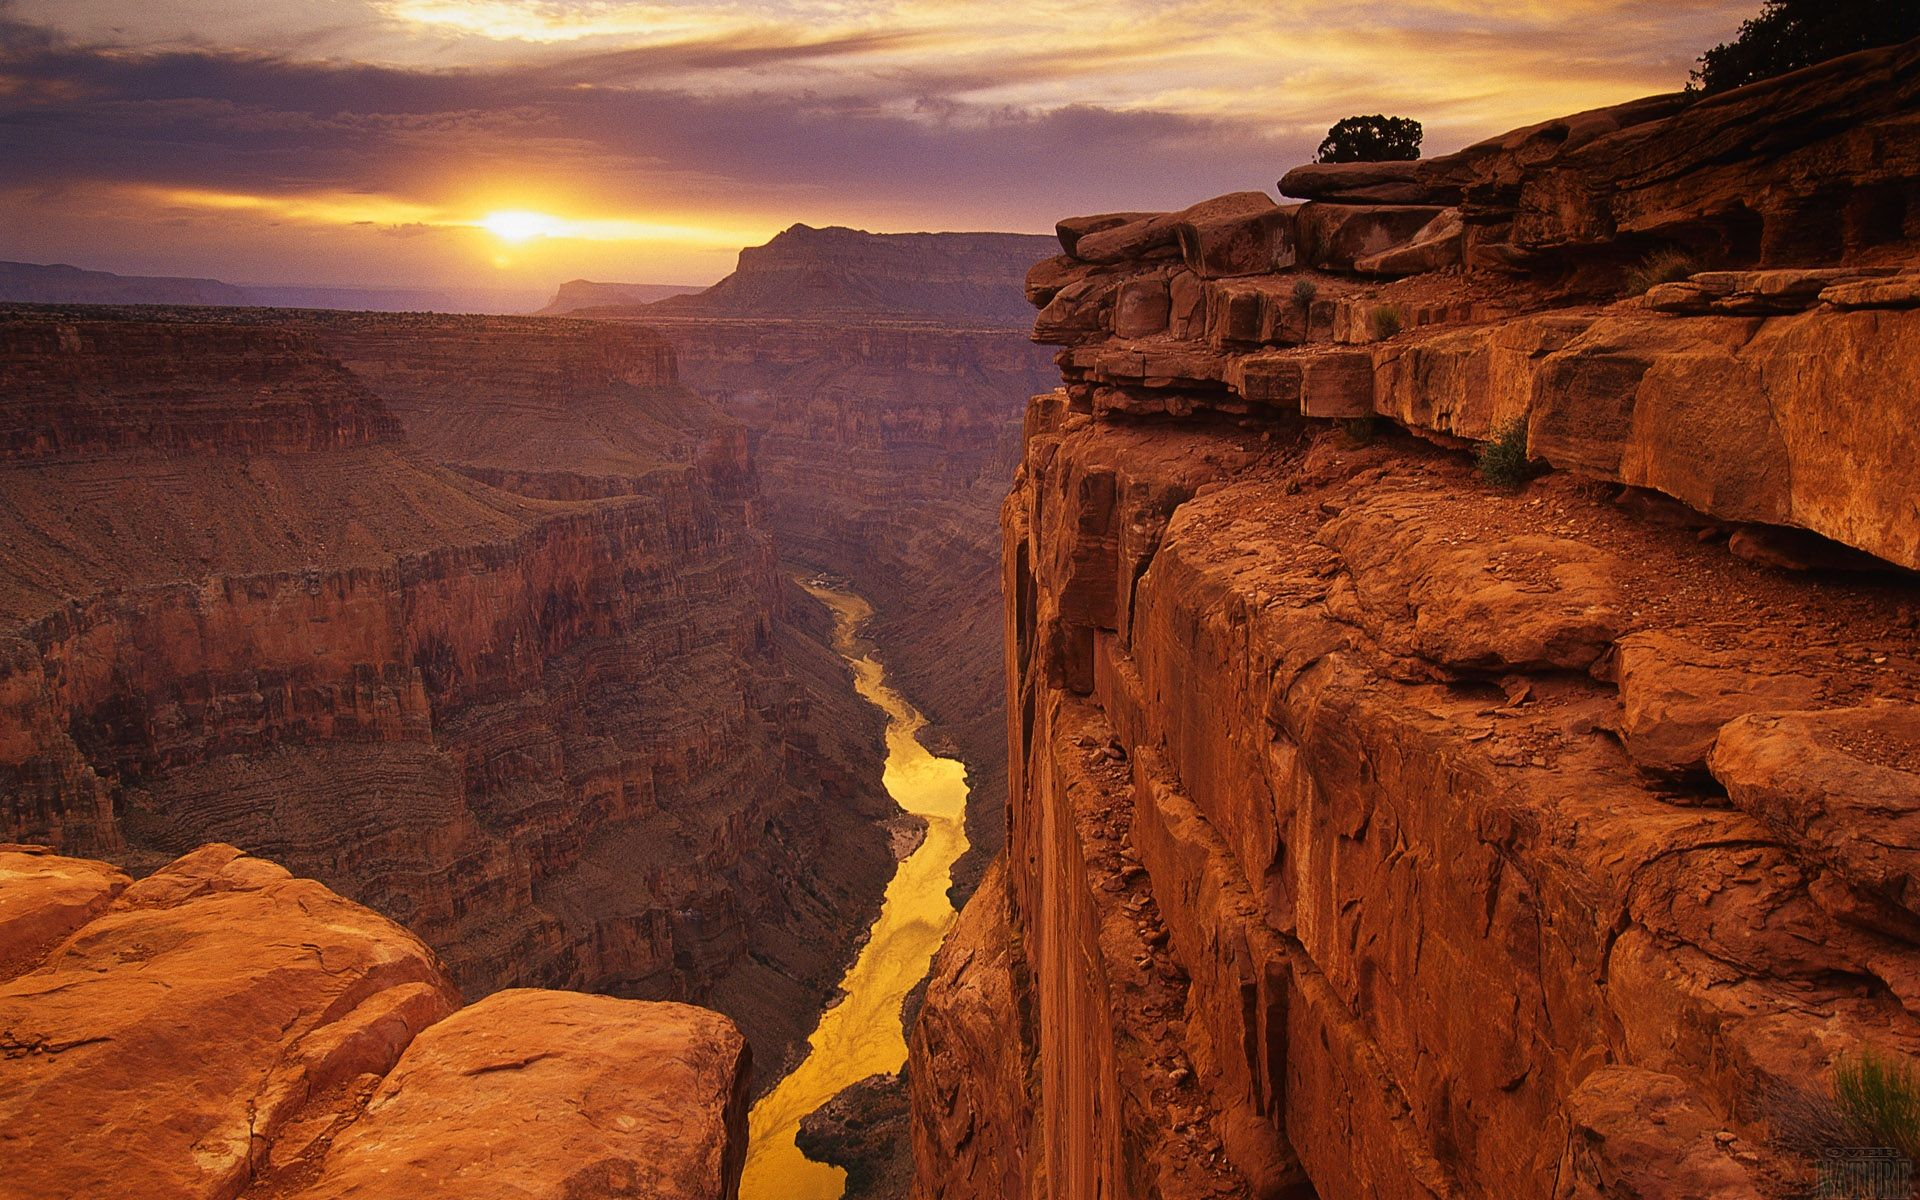 las vegas helicopter tours cheapest with The Grand Canyon on Stardust Map besides attraction Tickets Direct co moreover Canyonhummertours weebly in addition Grand Canyon Flights likewise 10 Great Last Minute Gifts For Everyone On Your List.